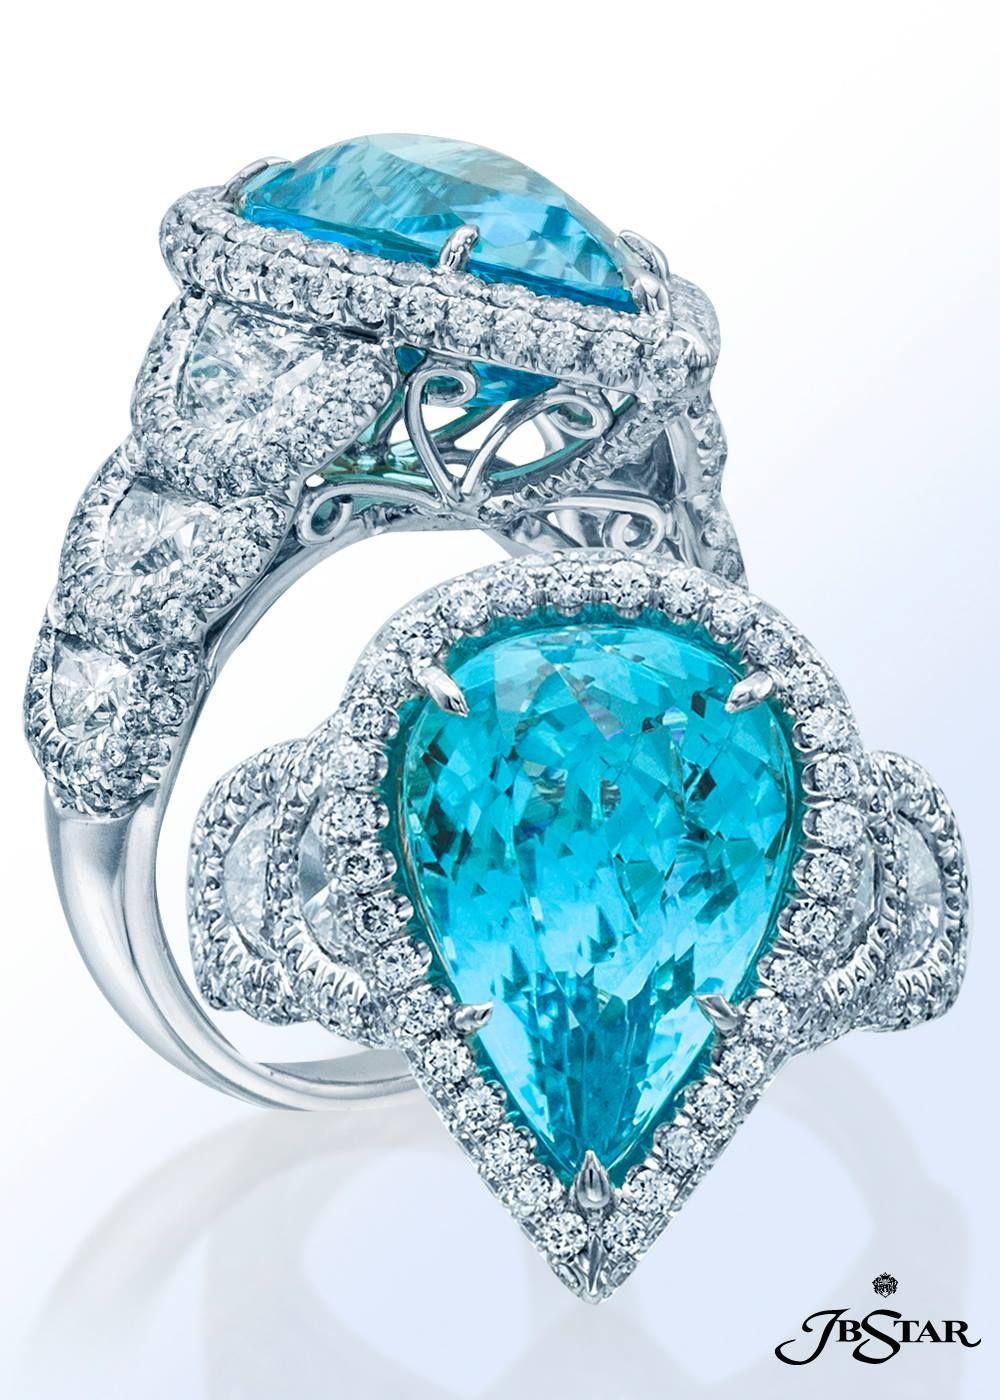 10 Colored Gemstone Engagement Ring Ideas (With images